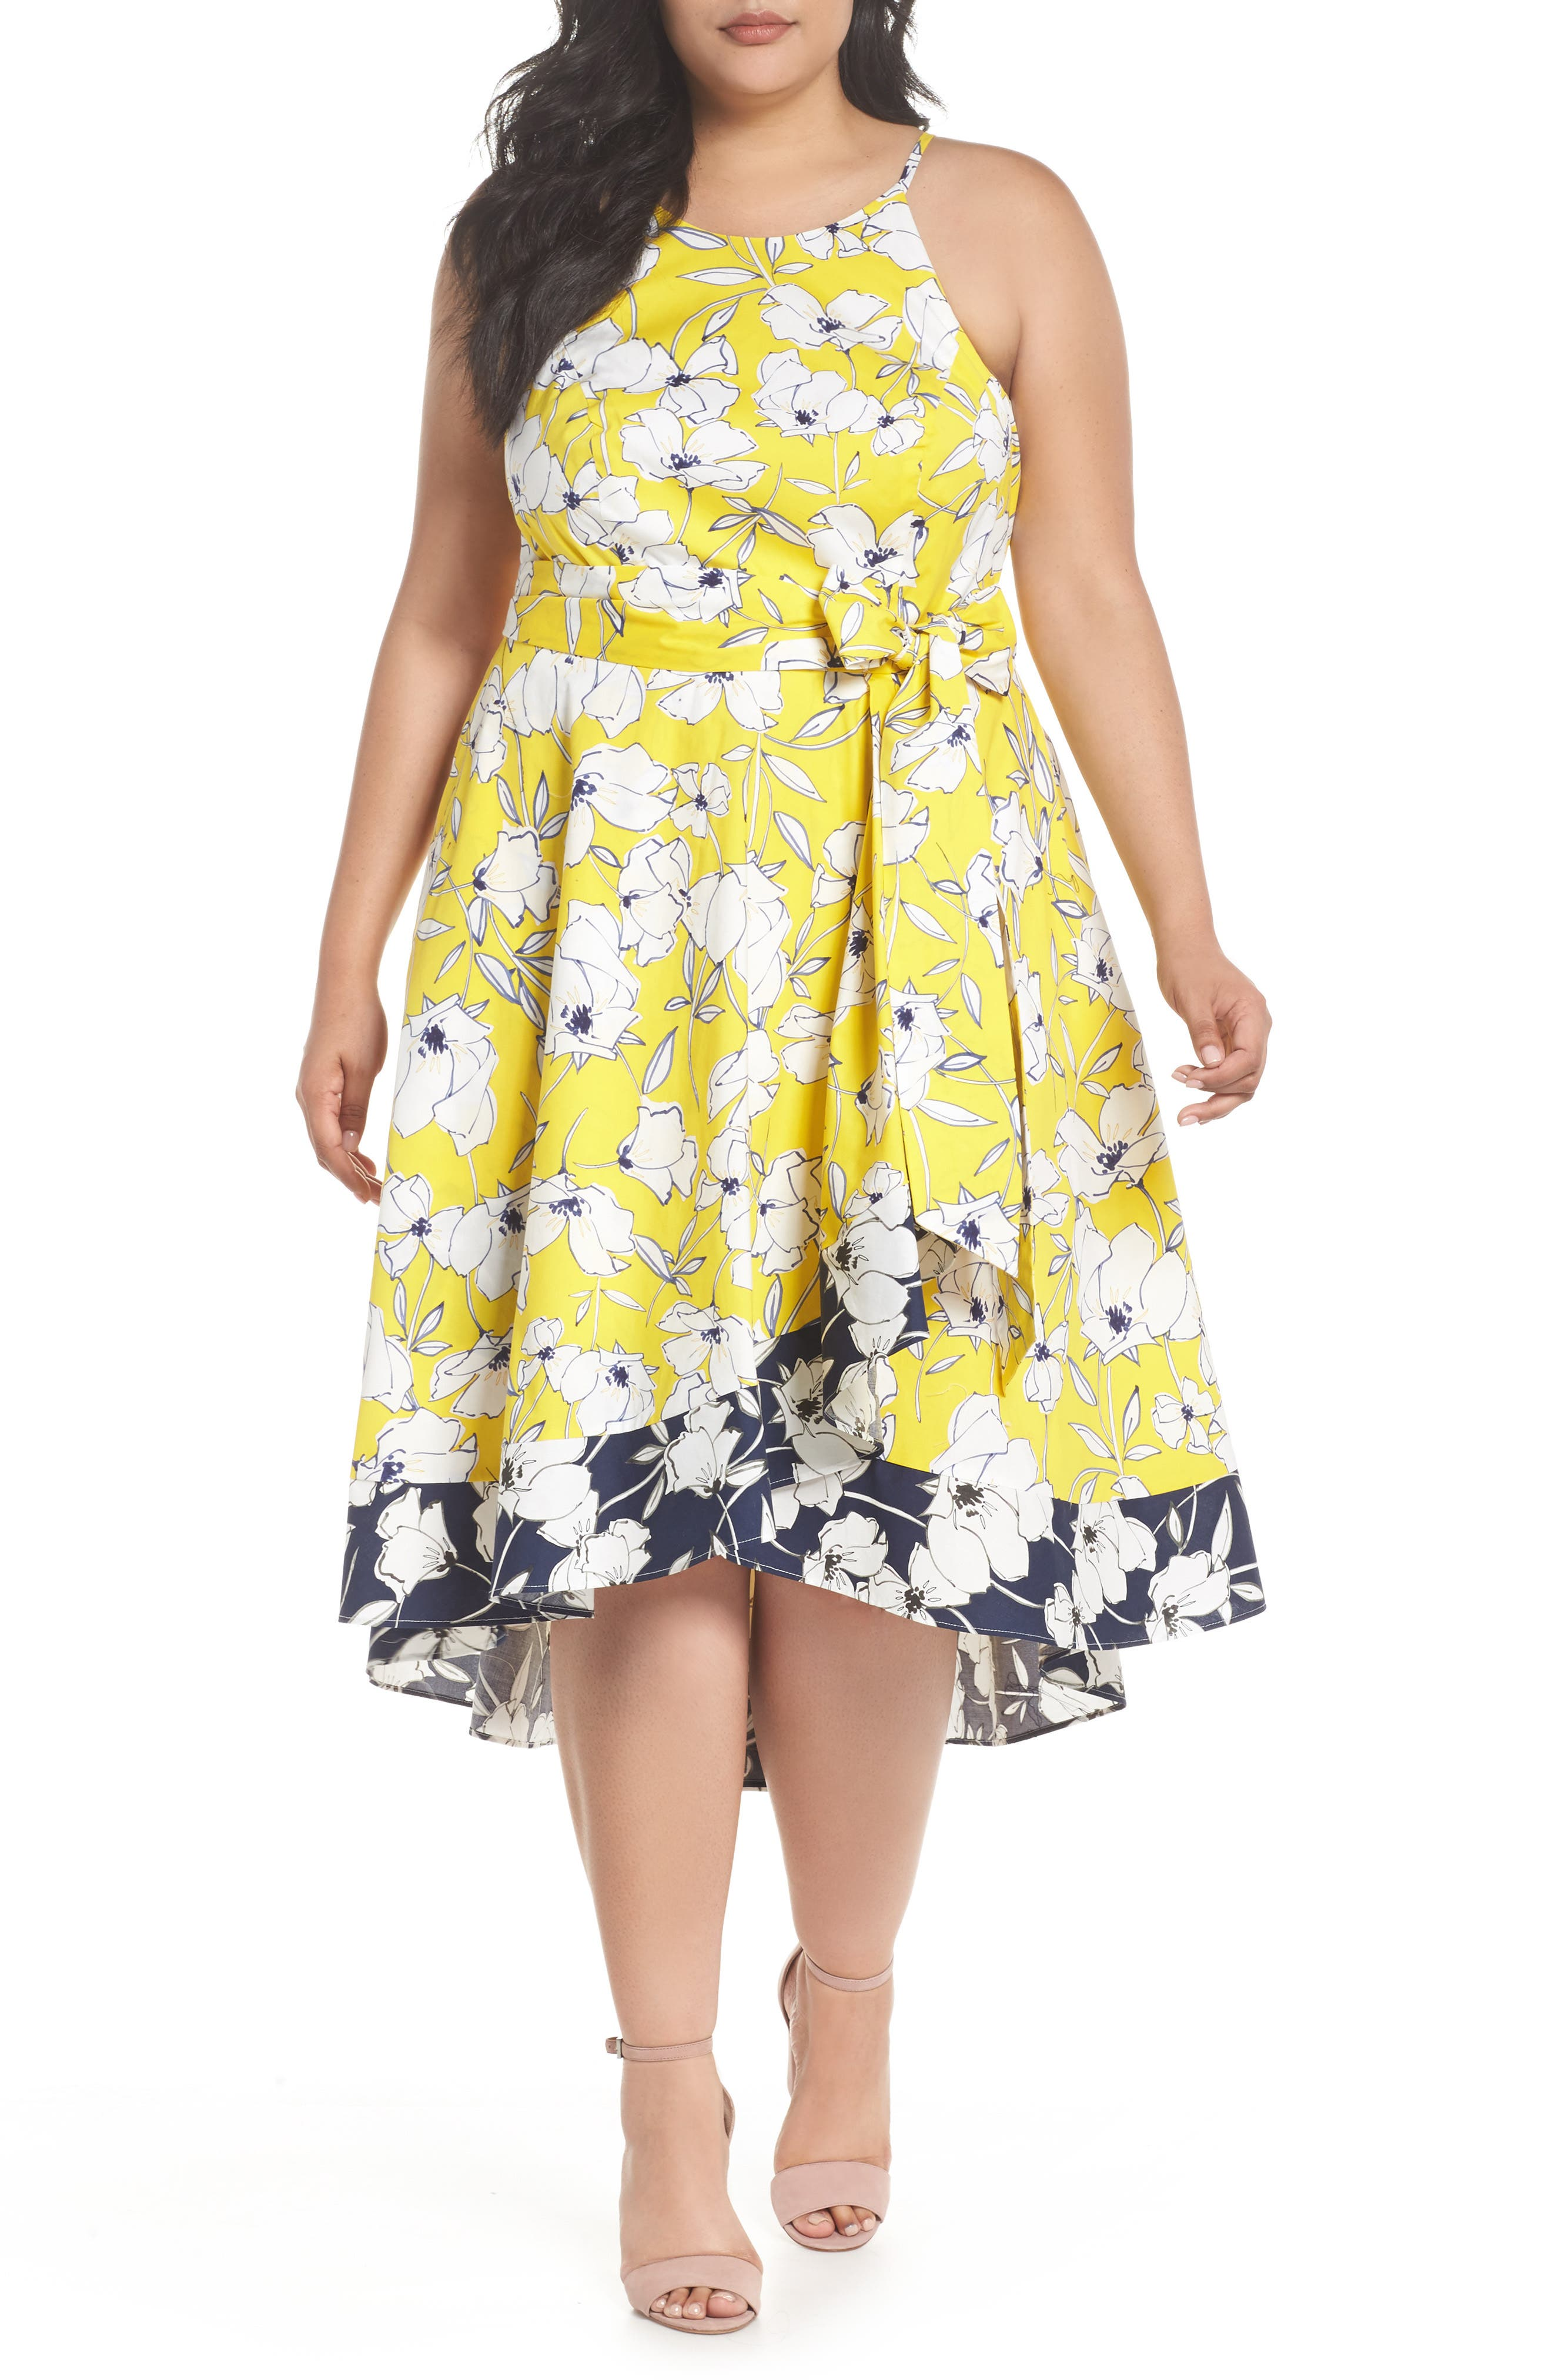 Floral Fit & Flare Dress,                             Main thumbnail 1, color,                             Yellow/ Navy/ White